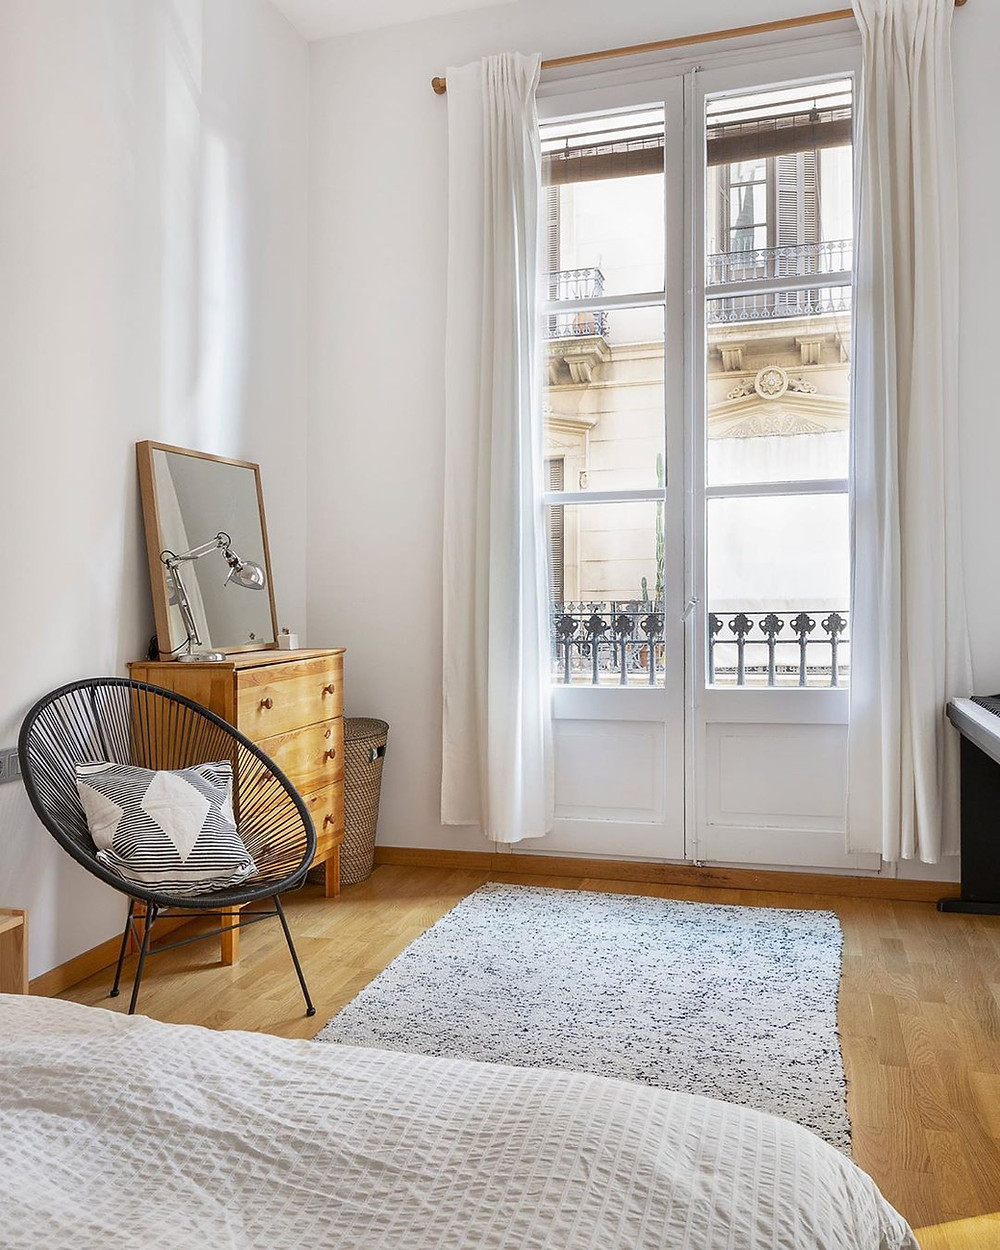 simple bedroom decor by the window with wooden dresser